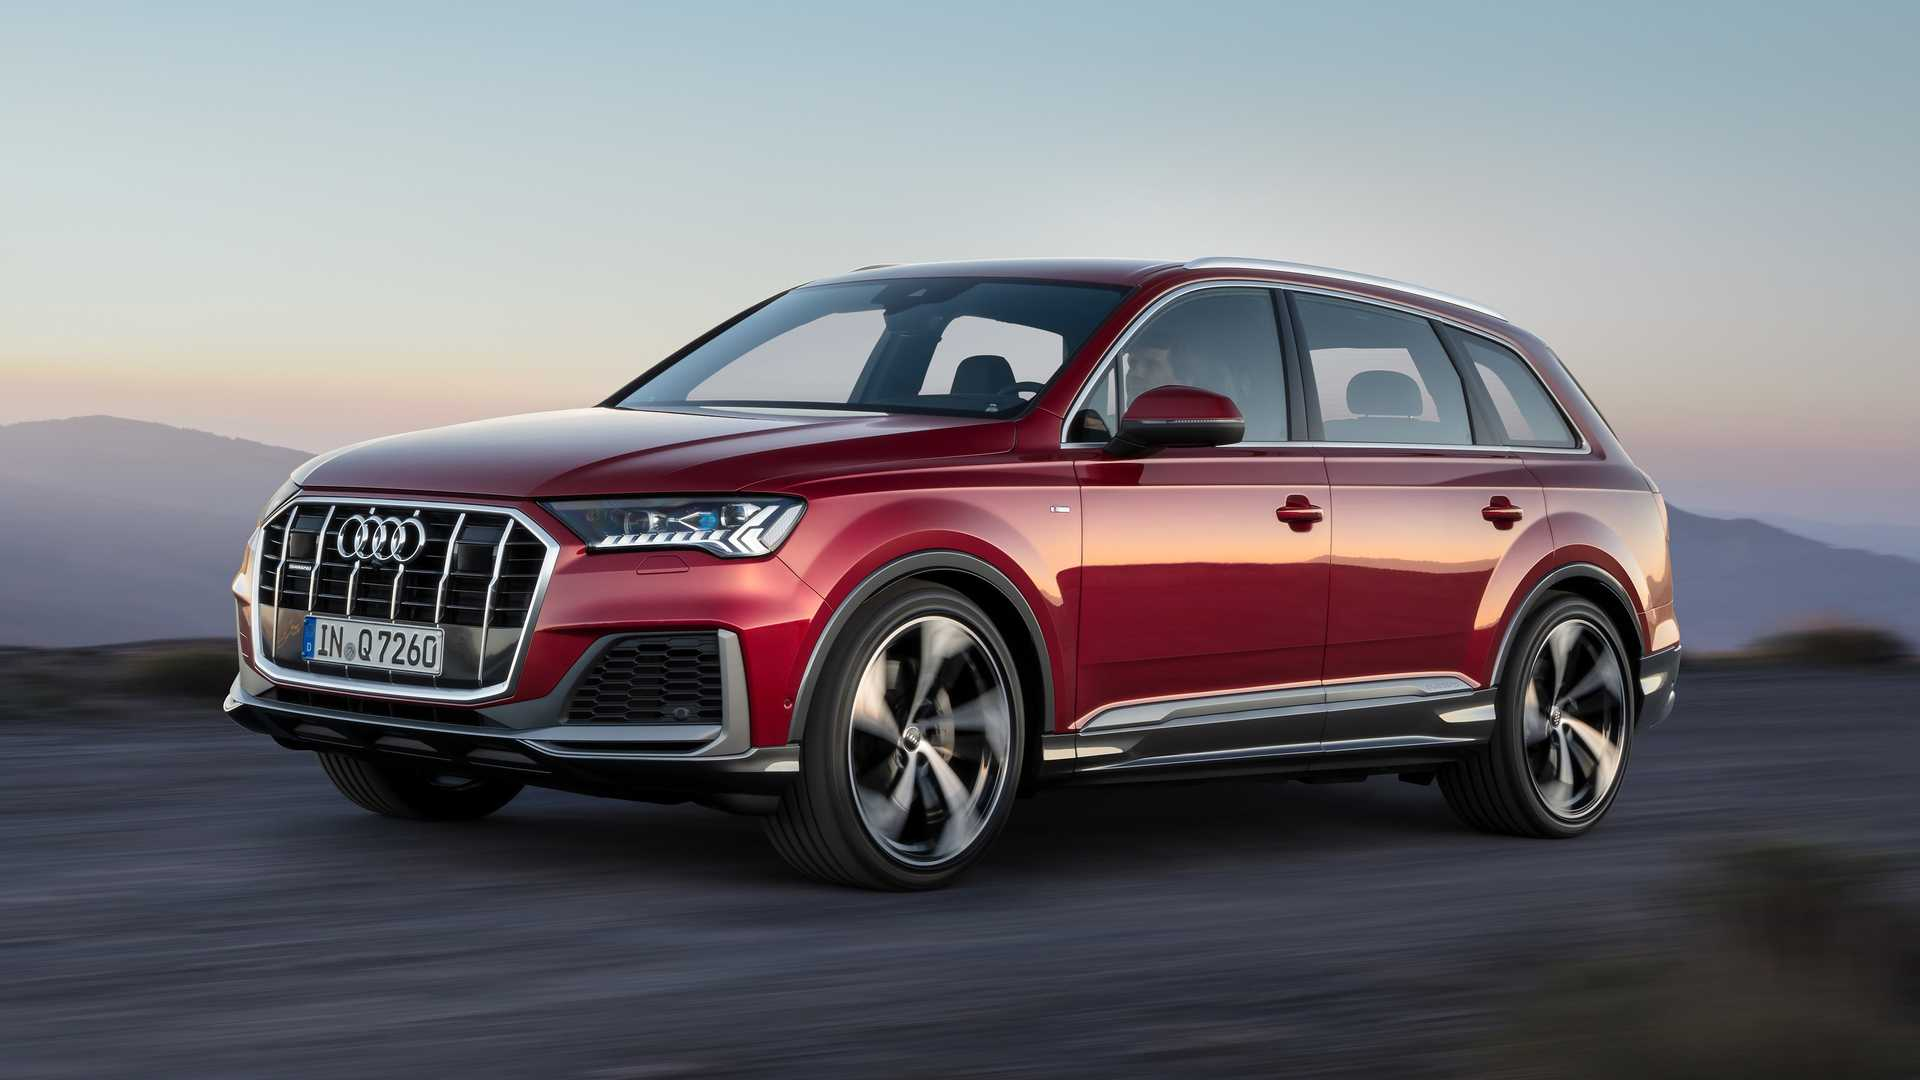 76 All New Audi Hybrid Range 2020 Price and Review with Audi Hybrid Range 2020